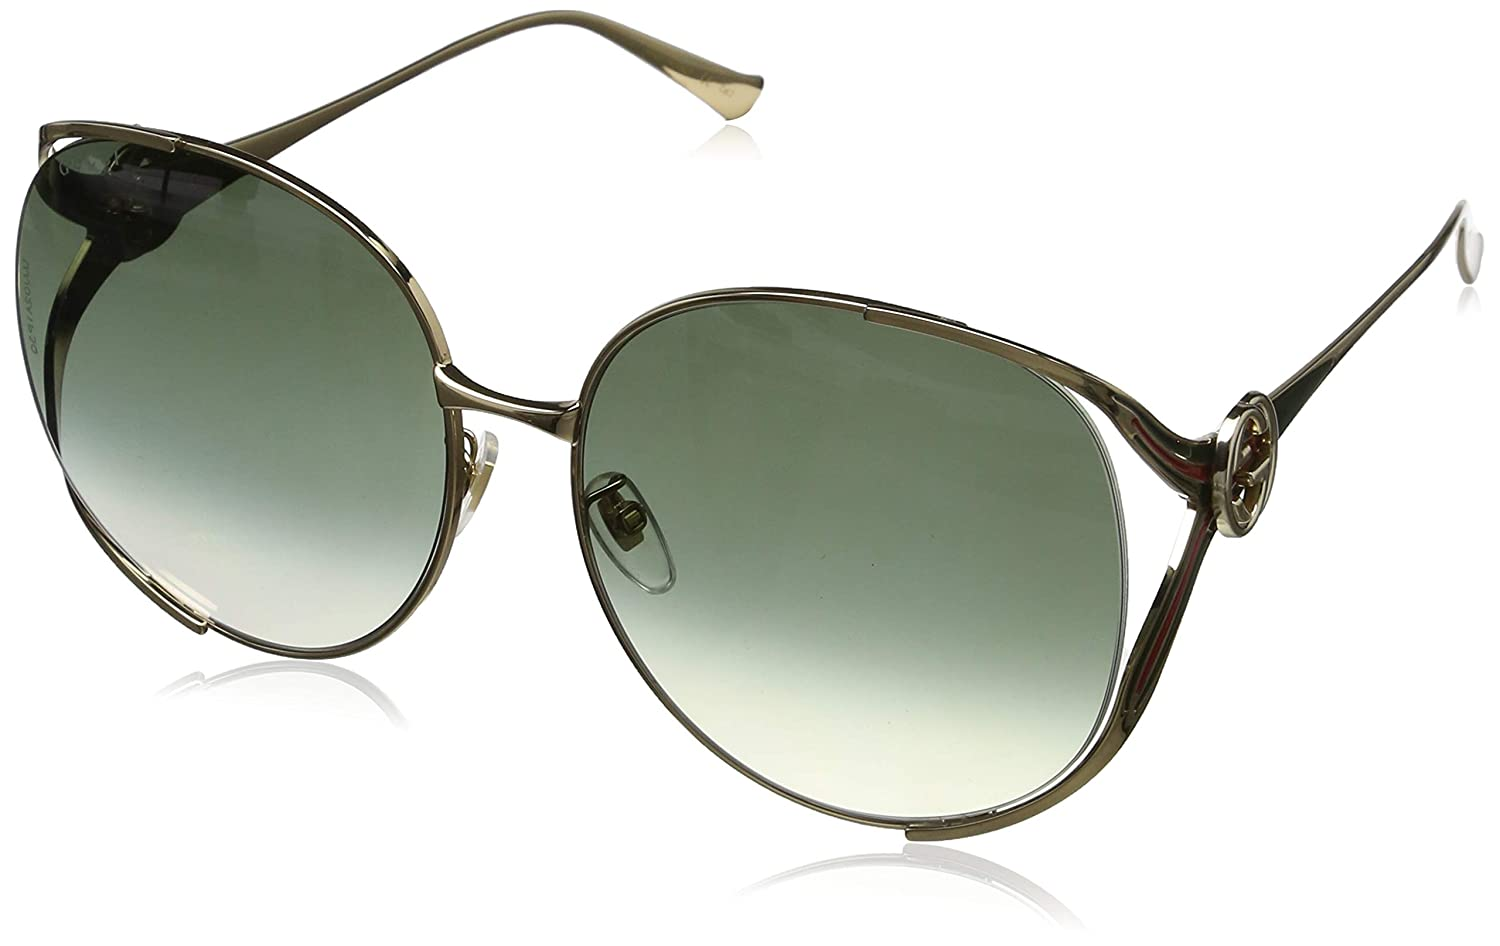 aa7331fa70d Amazon.com  Gucci sunglasses (GG-0225-S 002) Gold - Blue - Brown grey black  Gradient lenses  Clothing